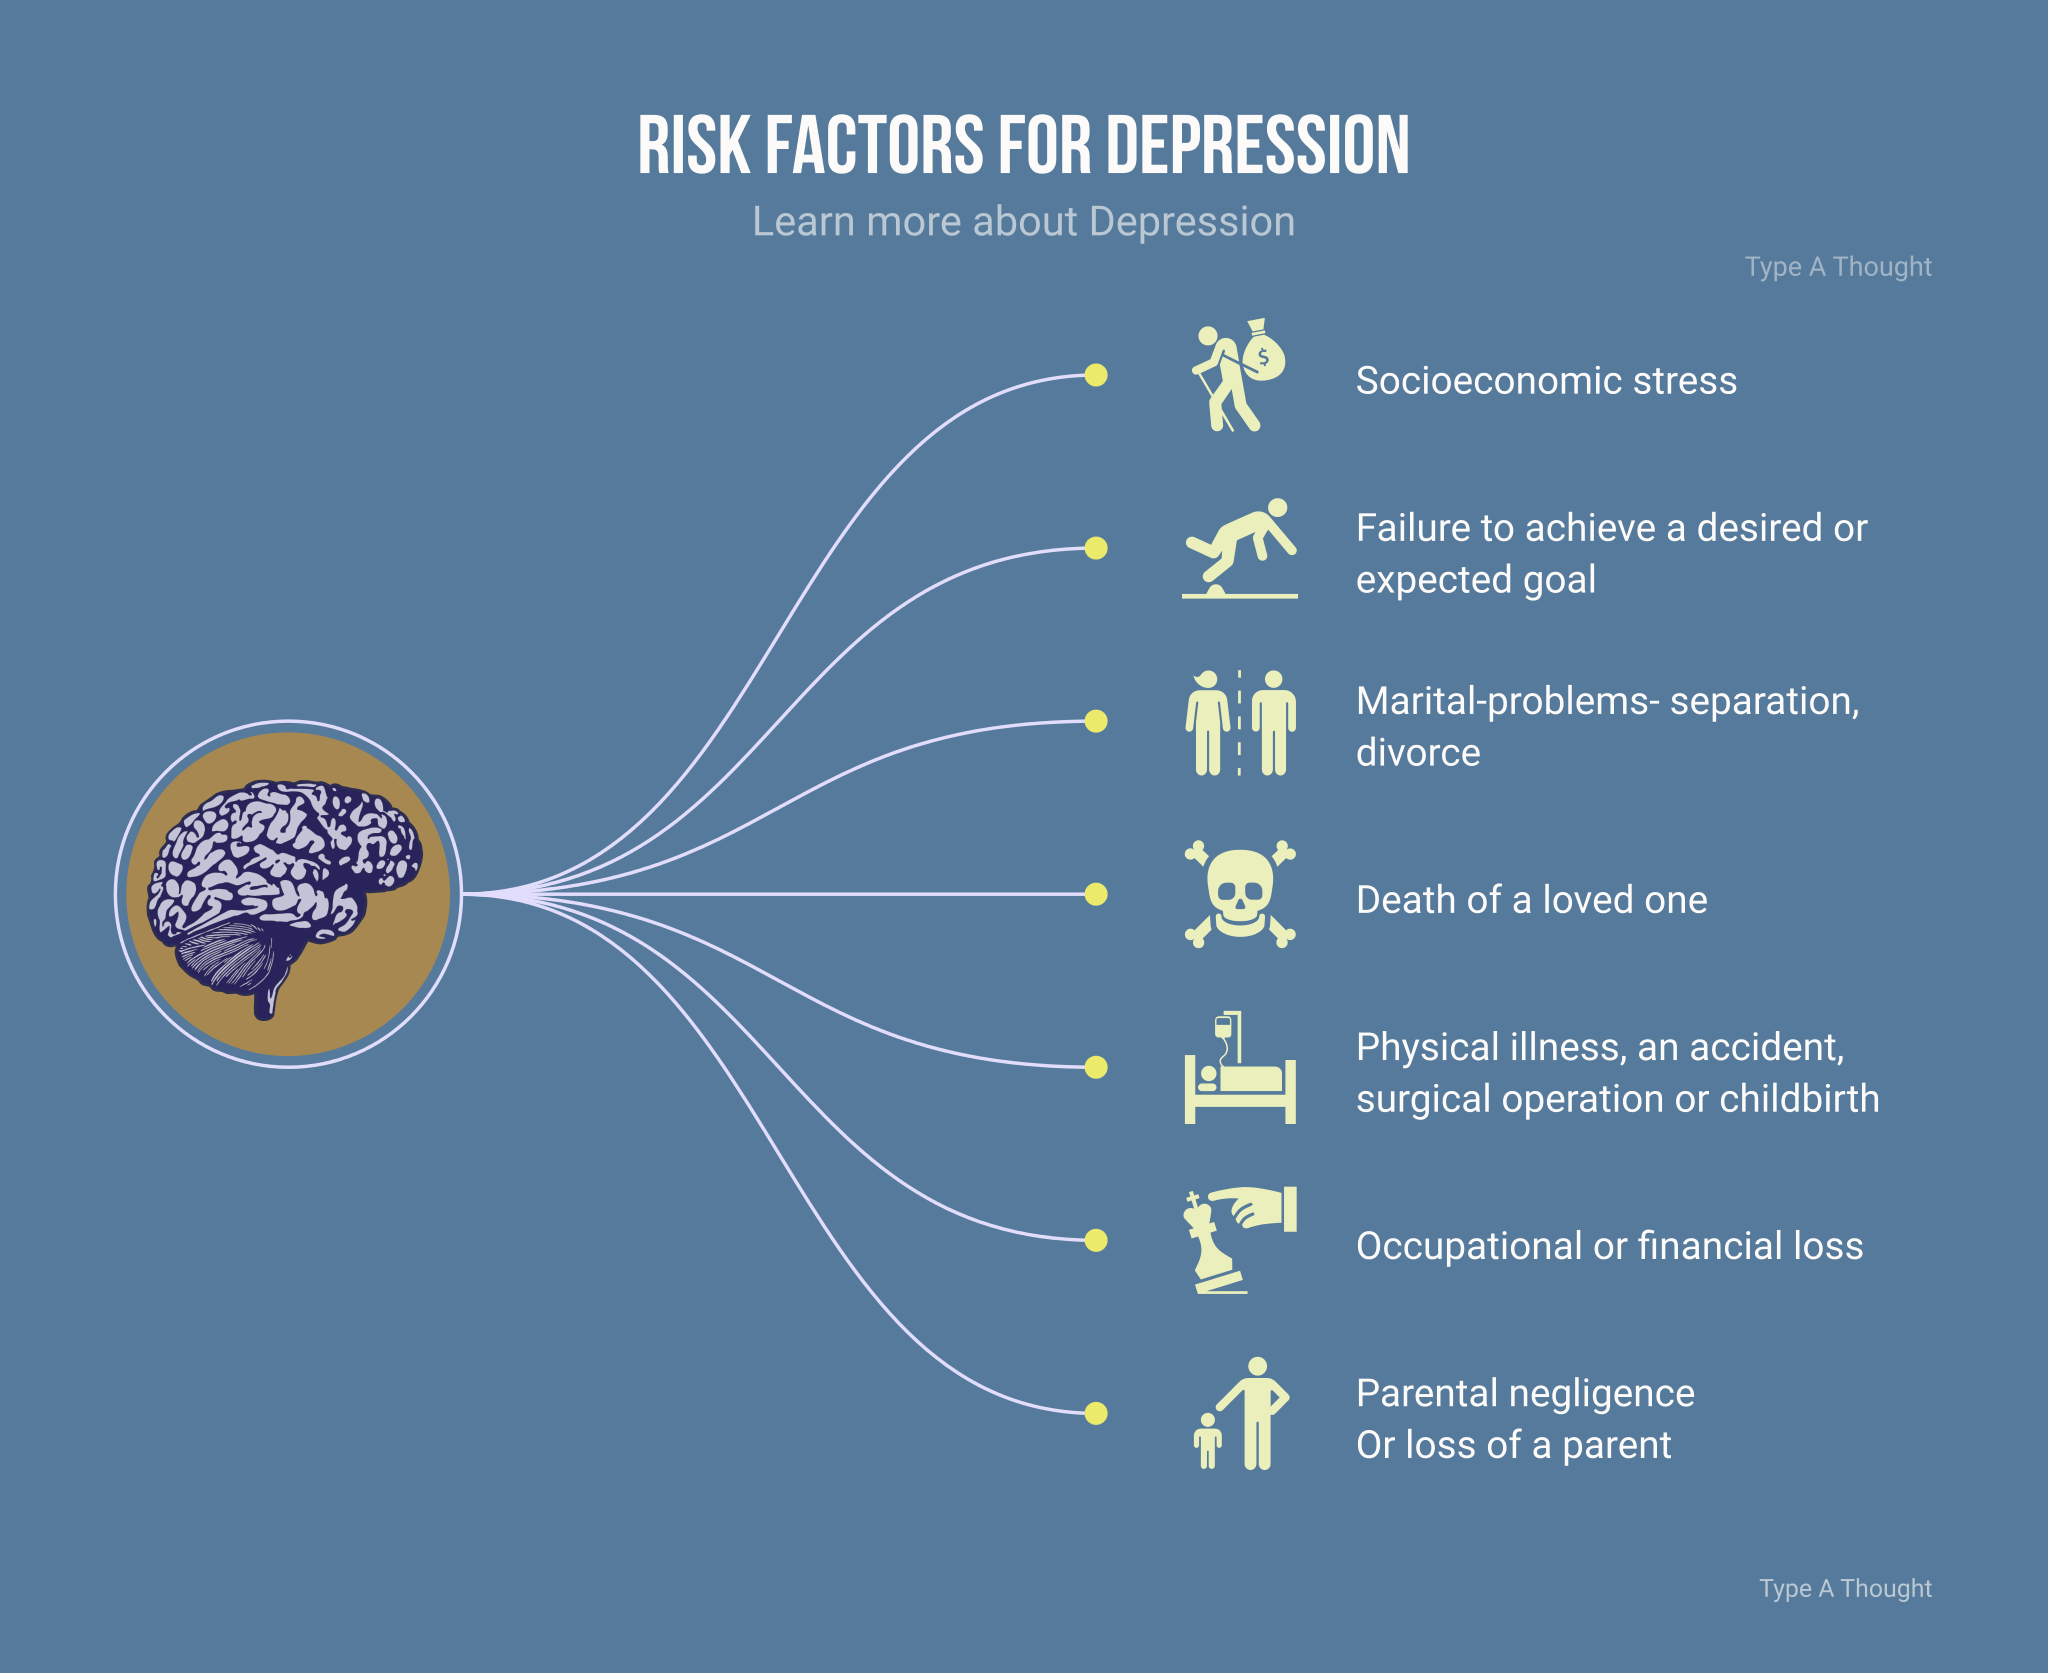 depression type a thoughtwhat are the risk factors for depression?